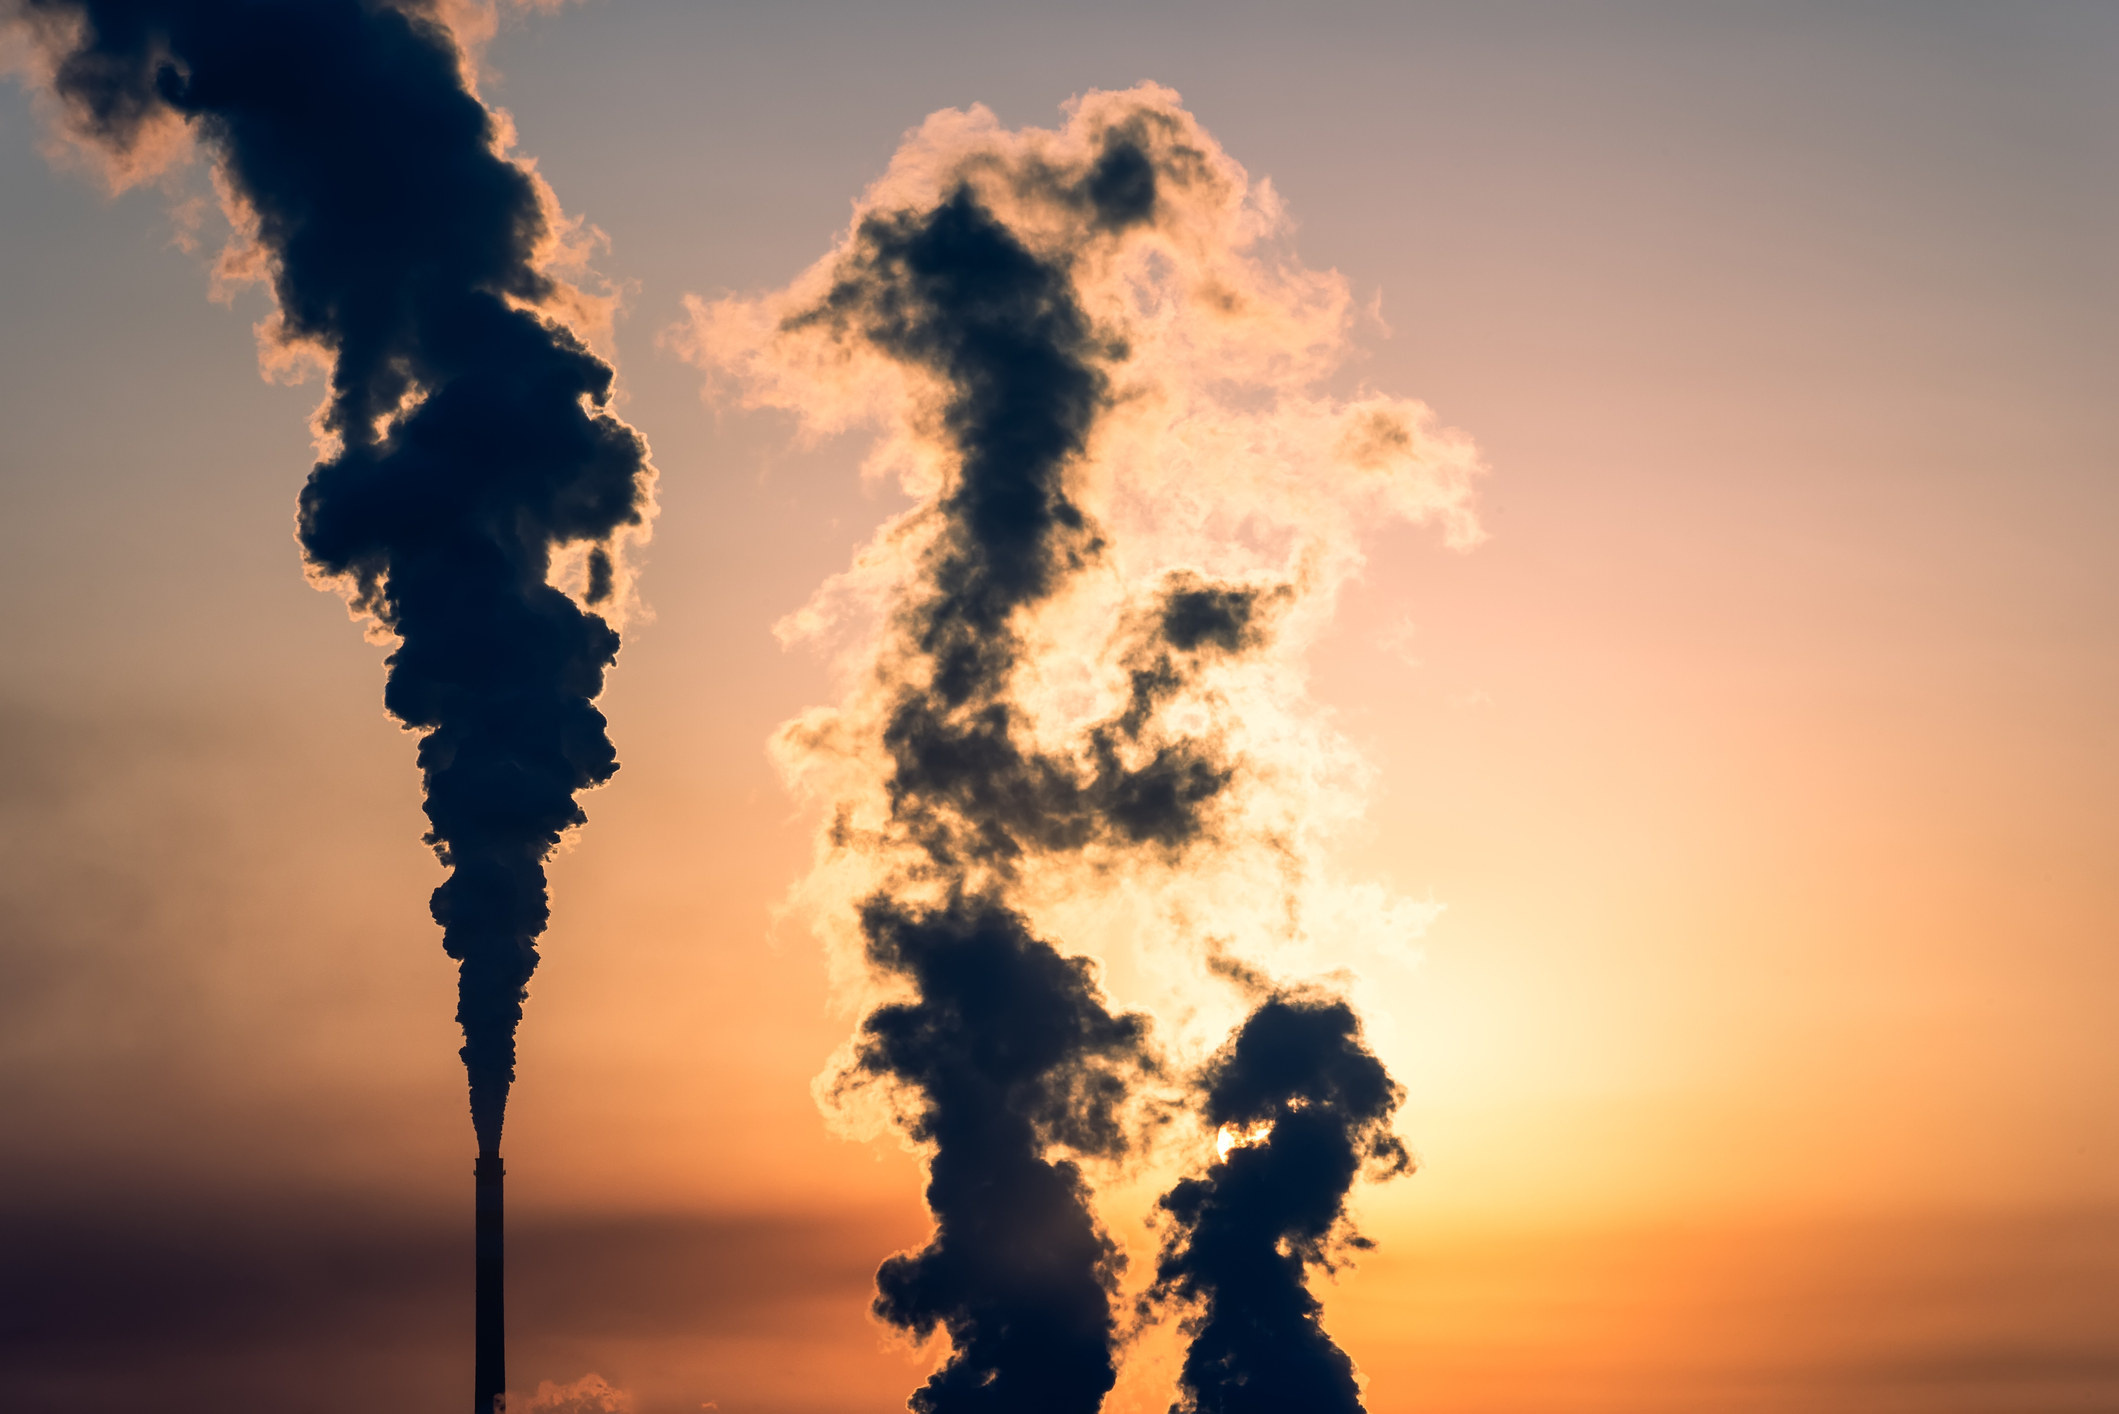 Our health demands action on methane